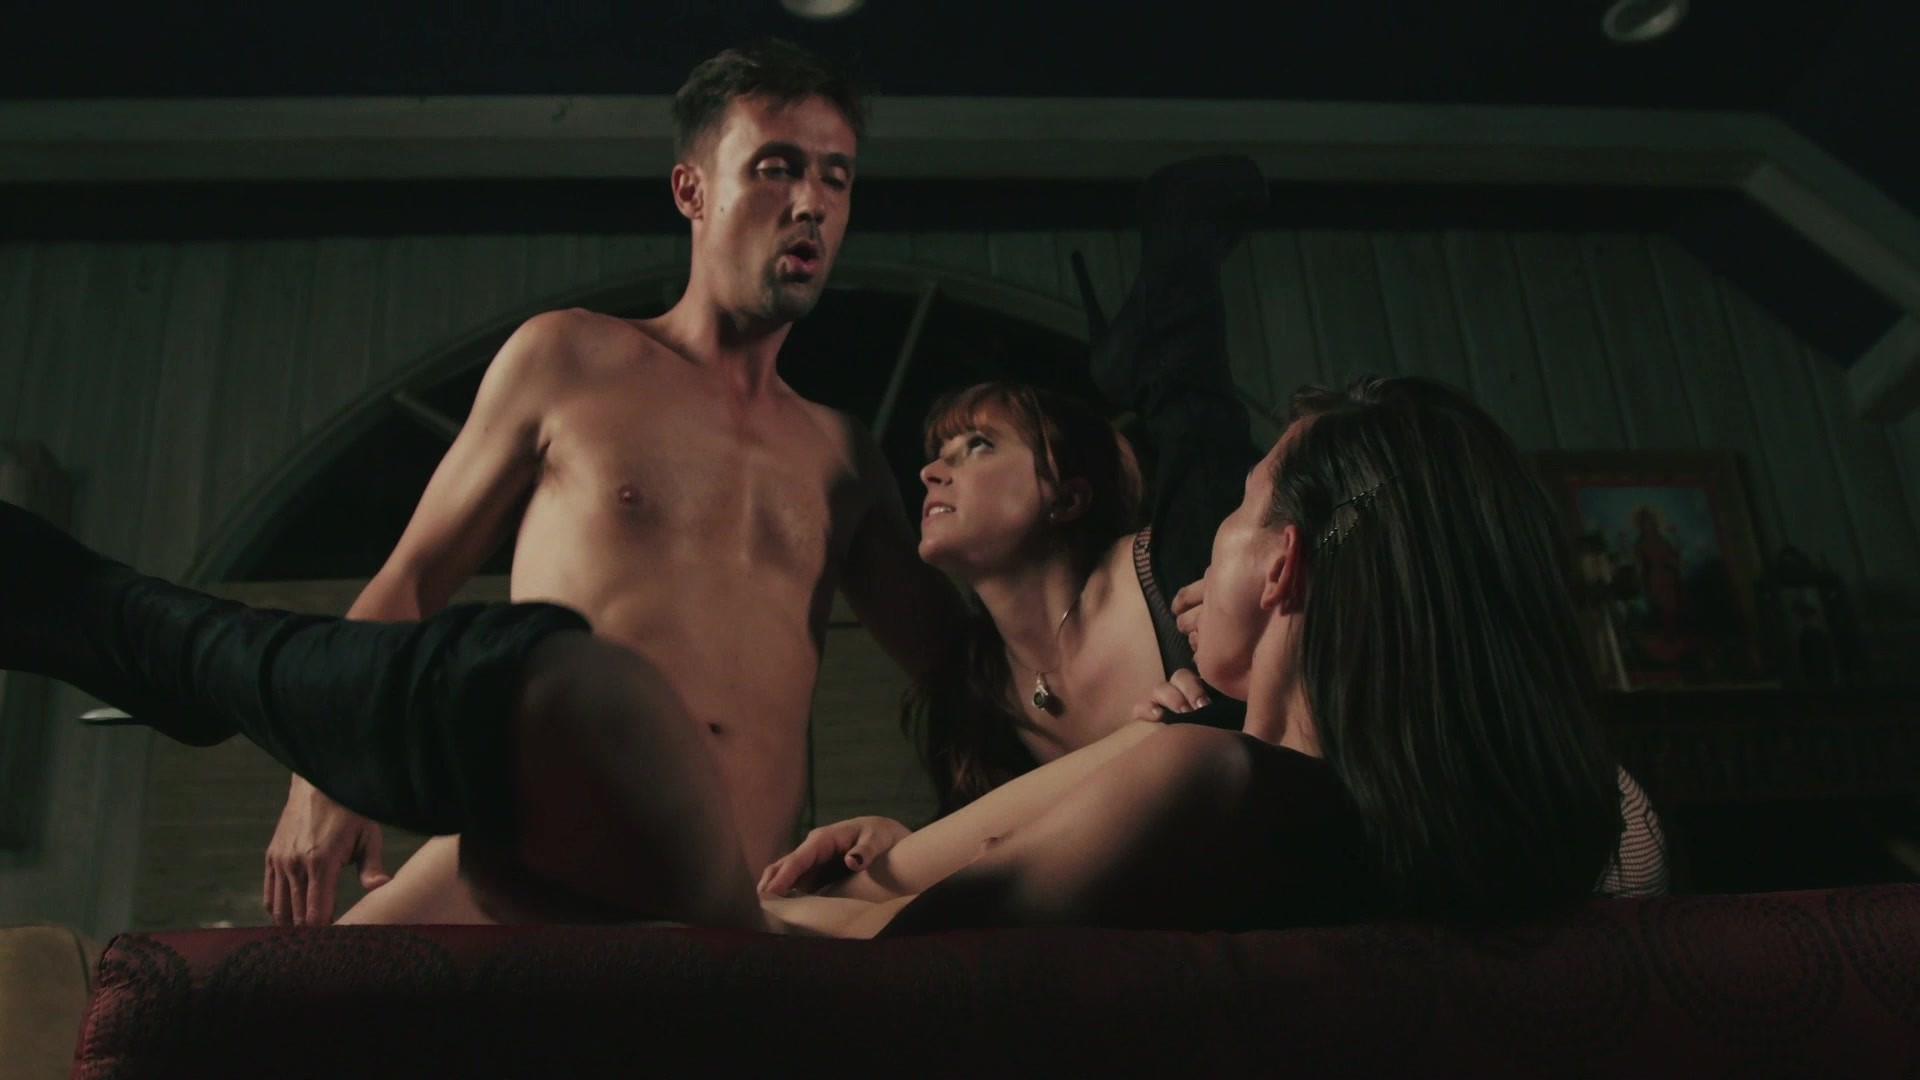 Scene with Richie Calhoun, Penny Pax and Aidra Fox - image 14 out of 20